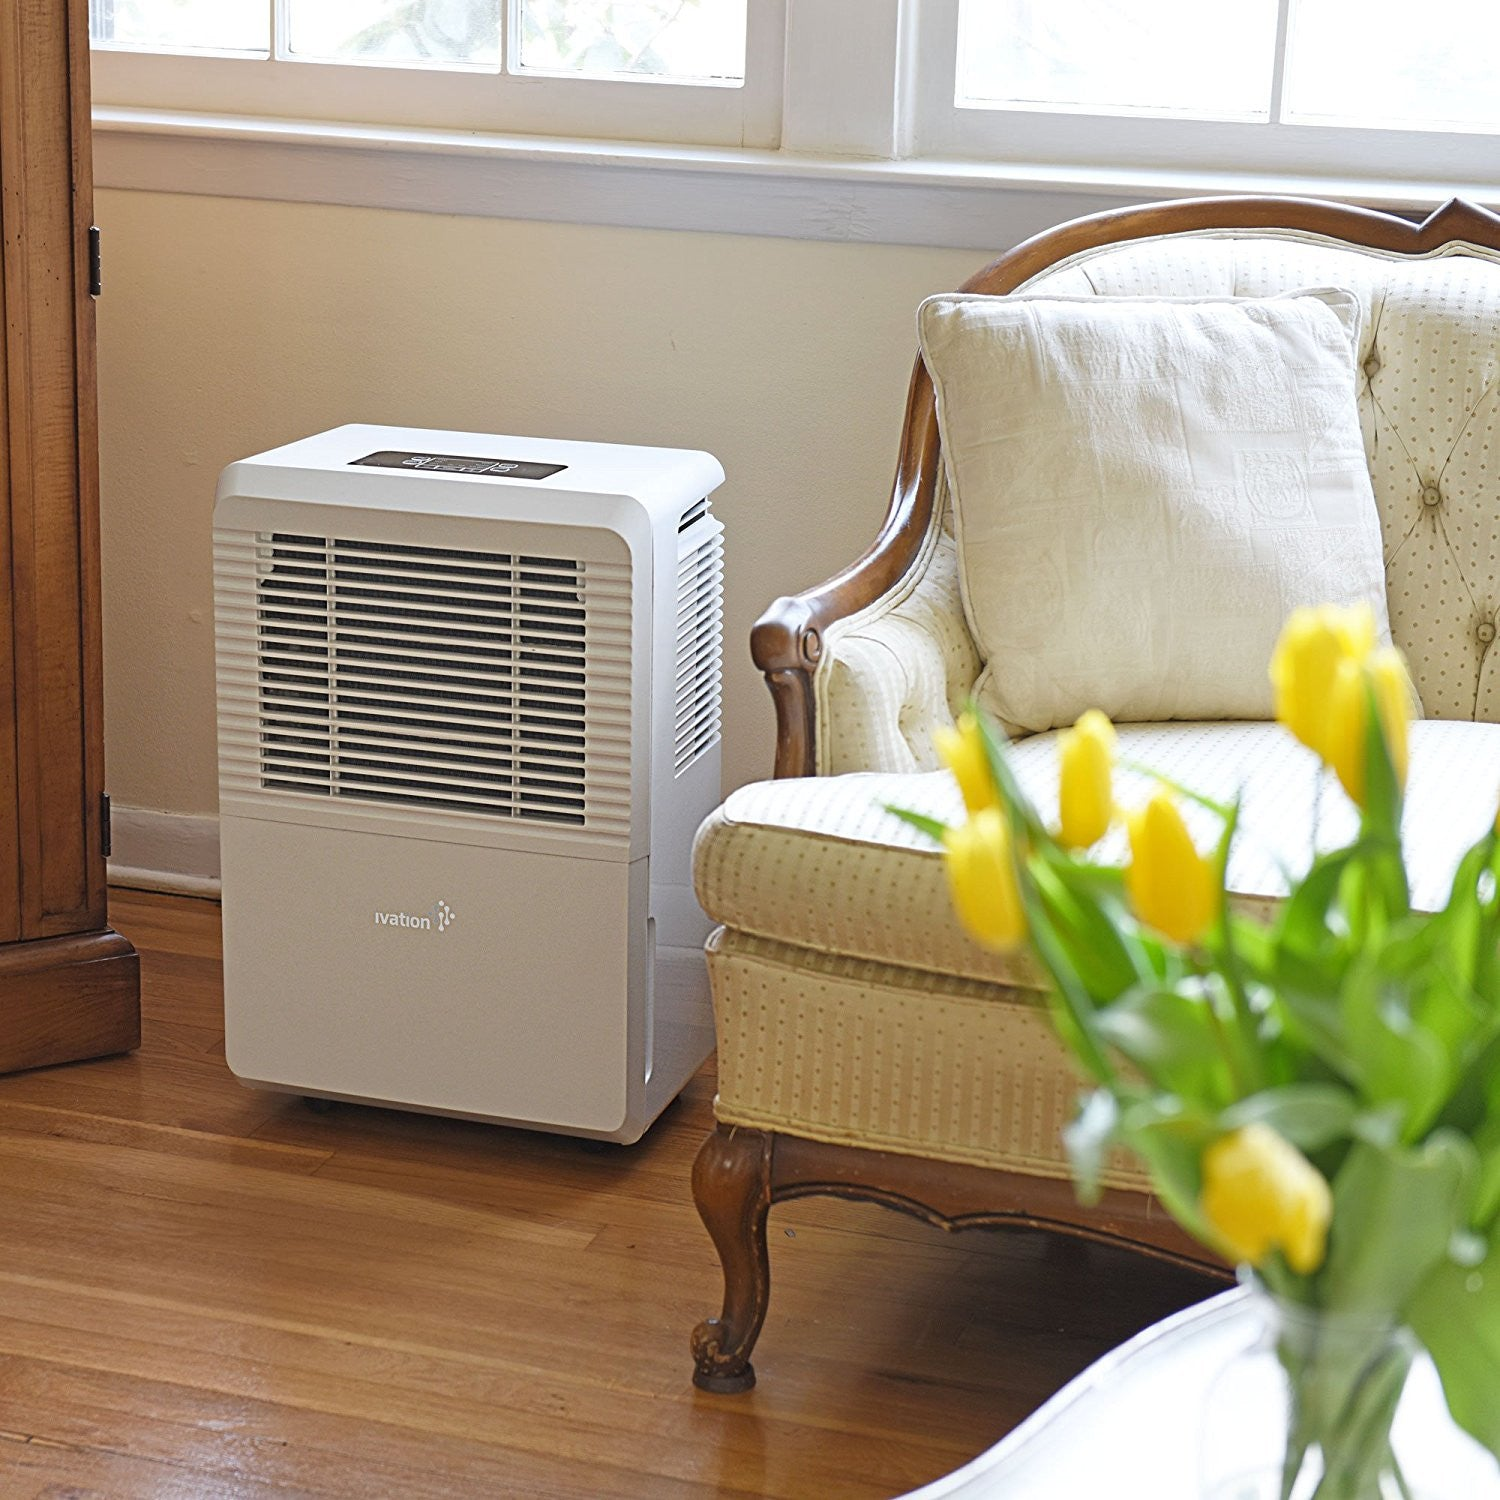 Large-Capacity For Spaces U Ivation 70 Pint Energy Star Dehumidifier WITH PUMP